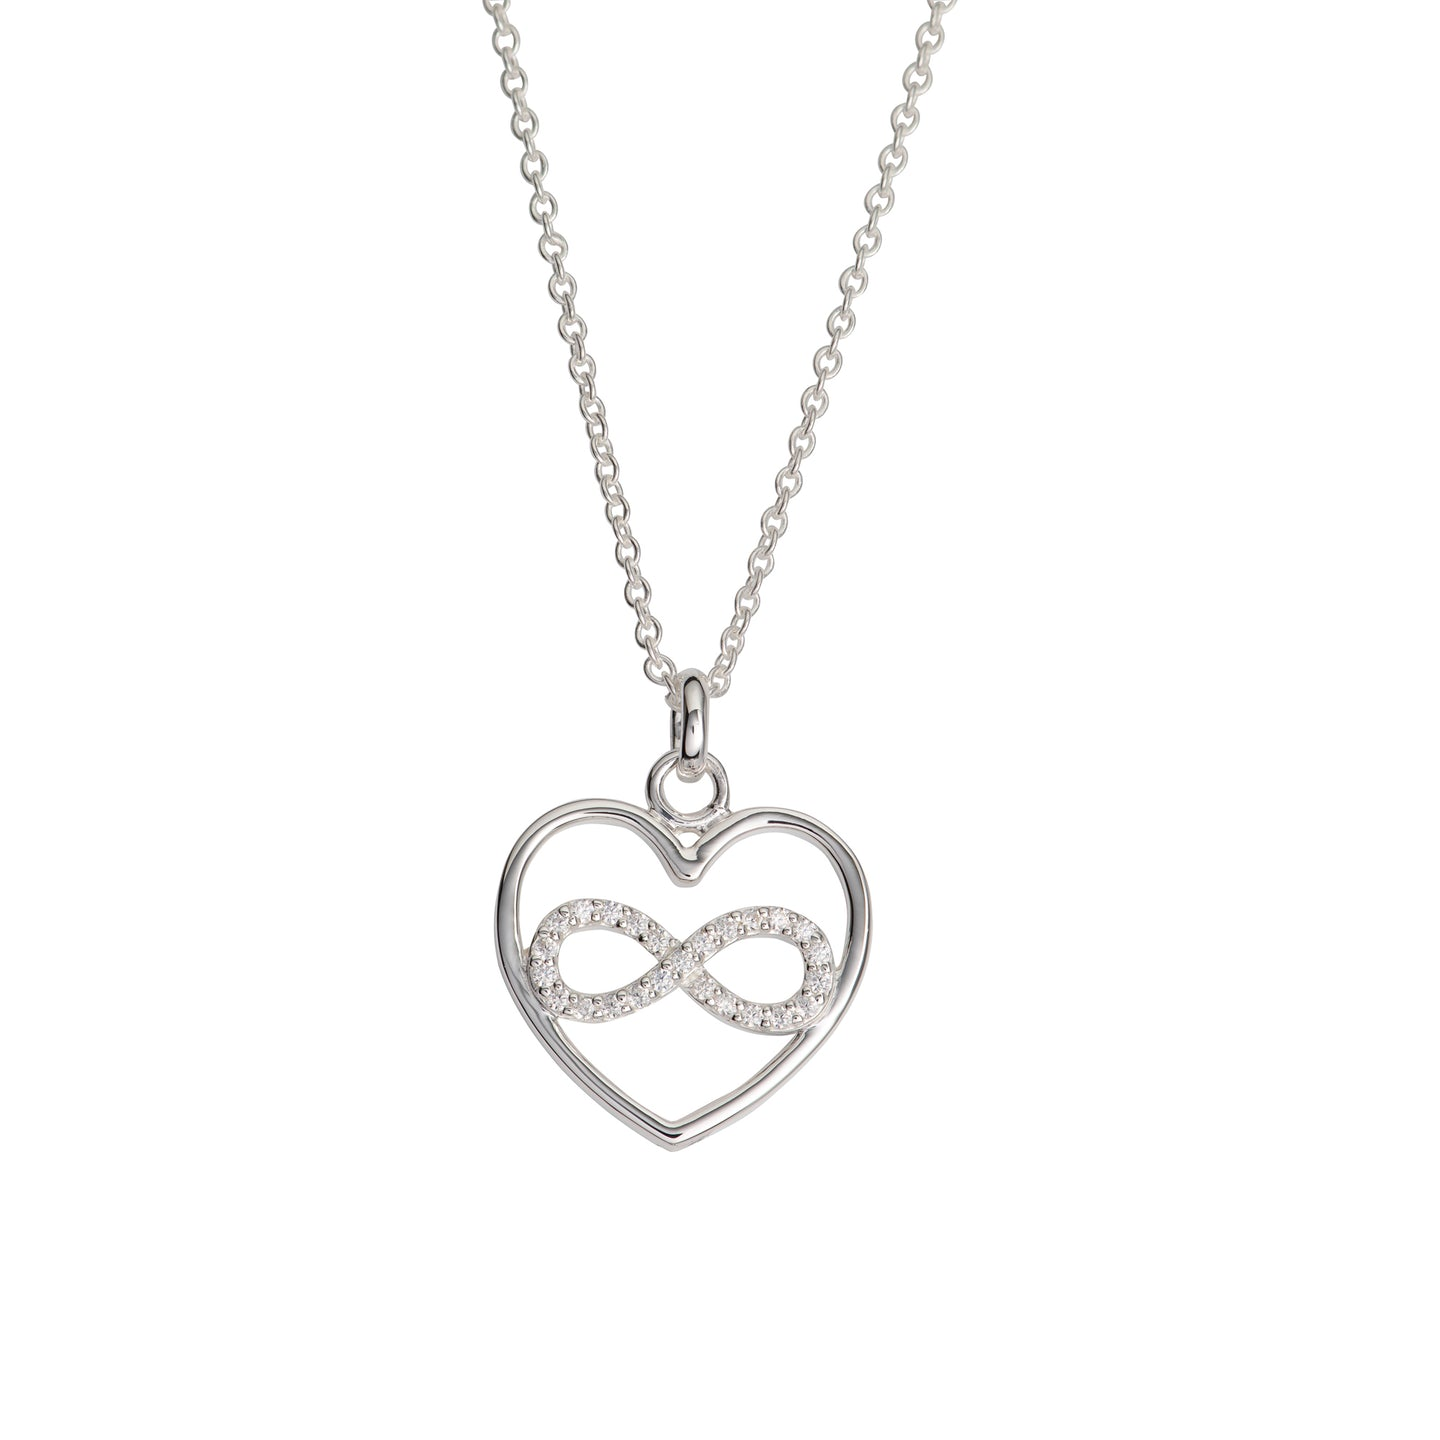 Silver Infinity Heart Pendant with Chain MK-767